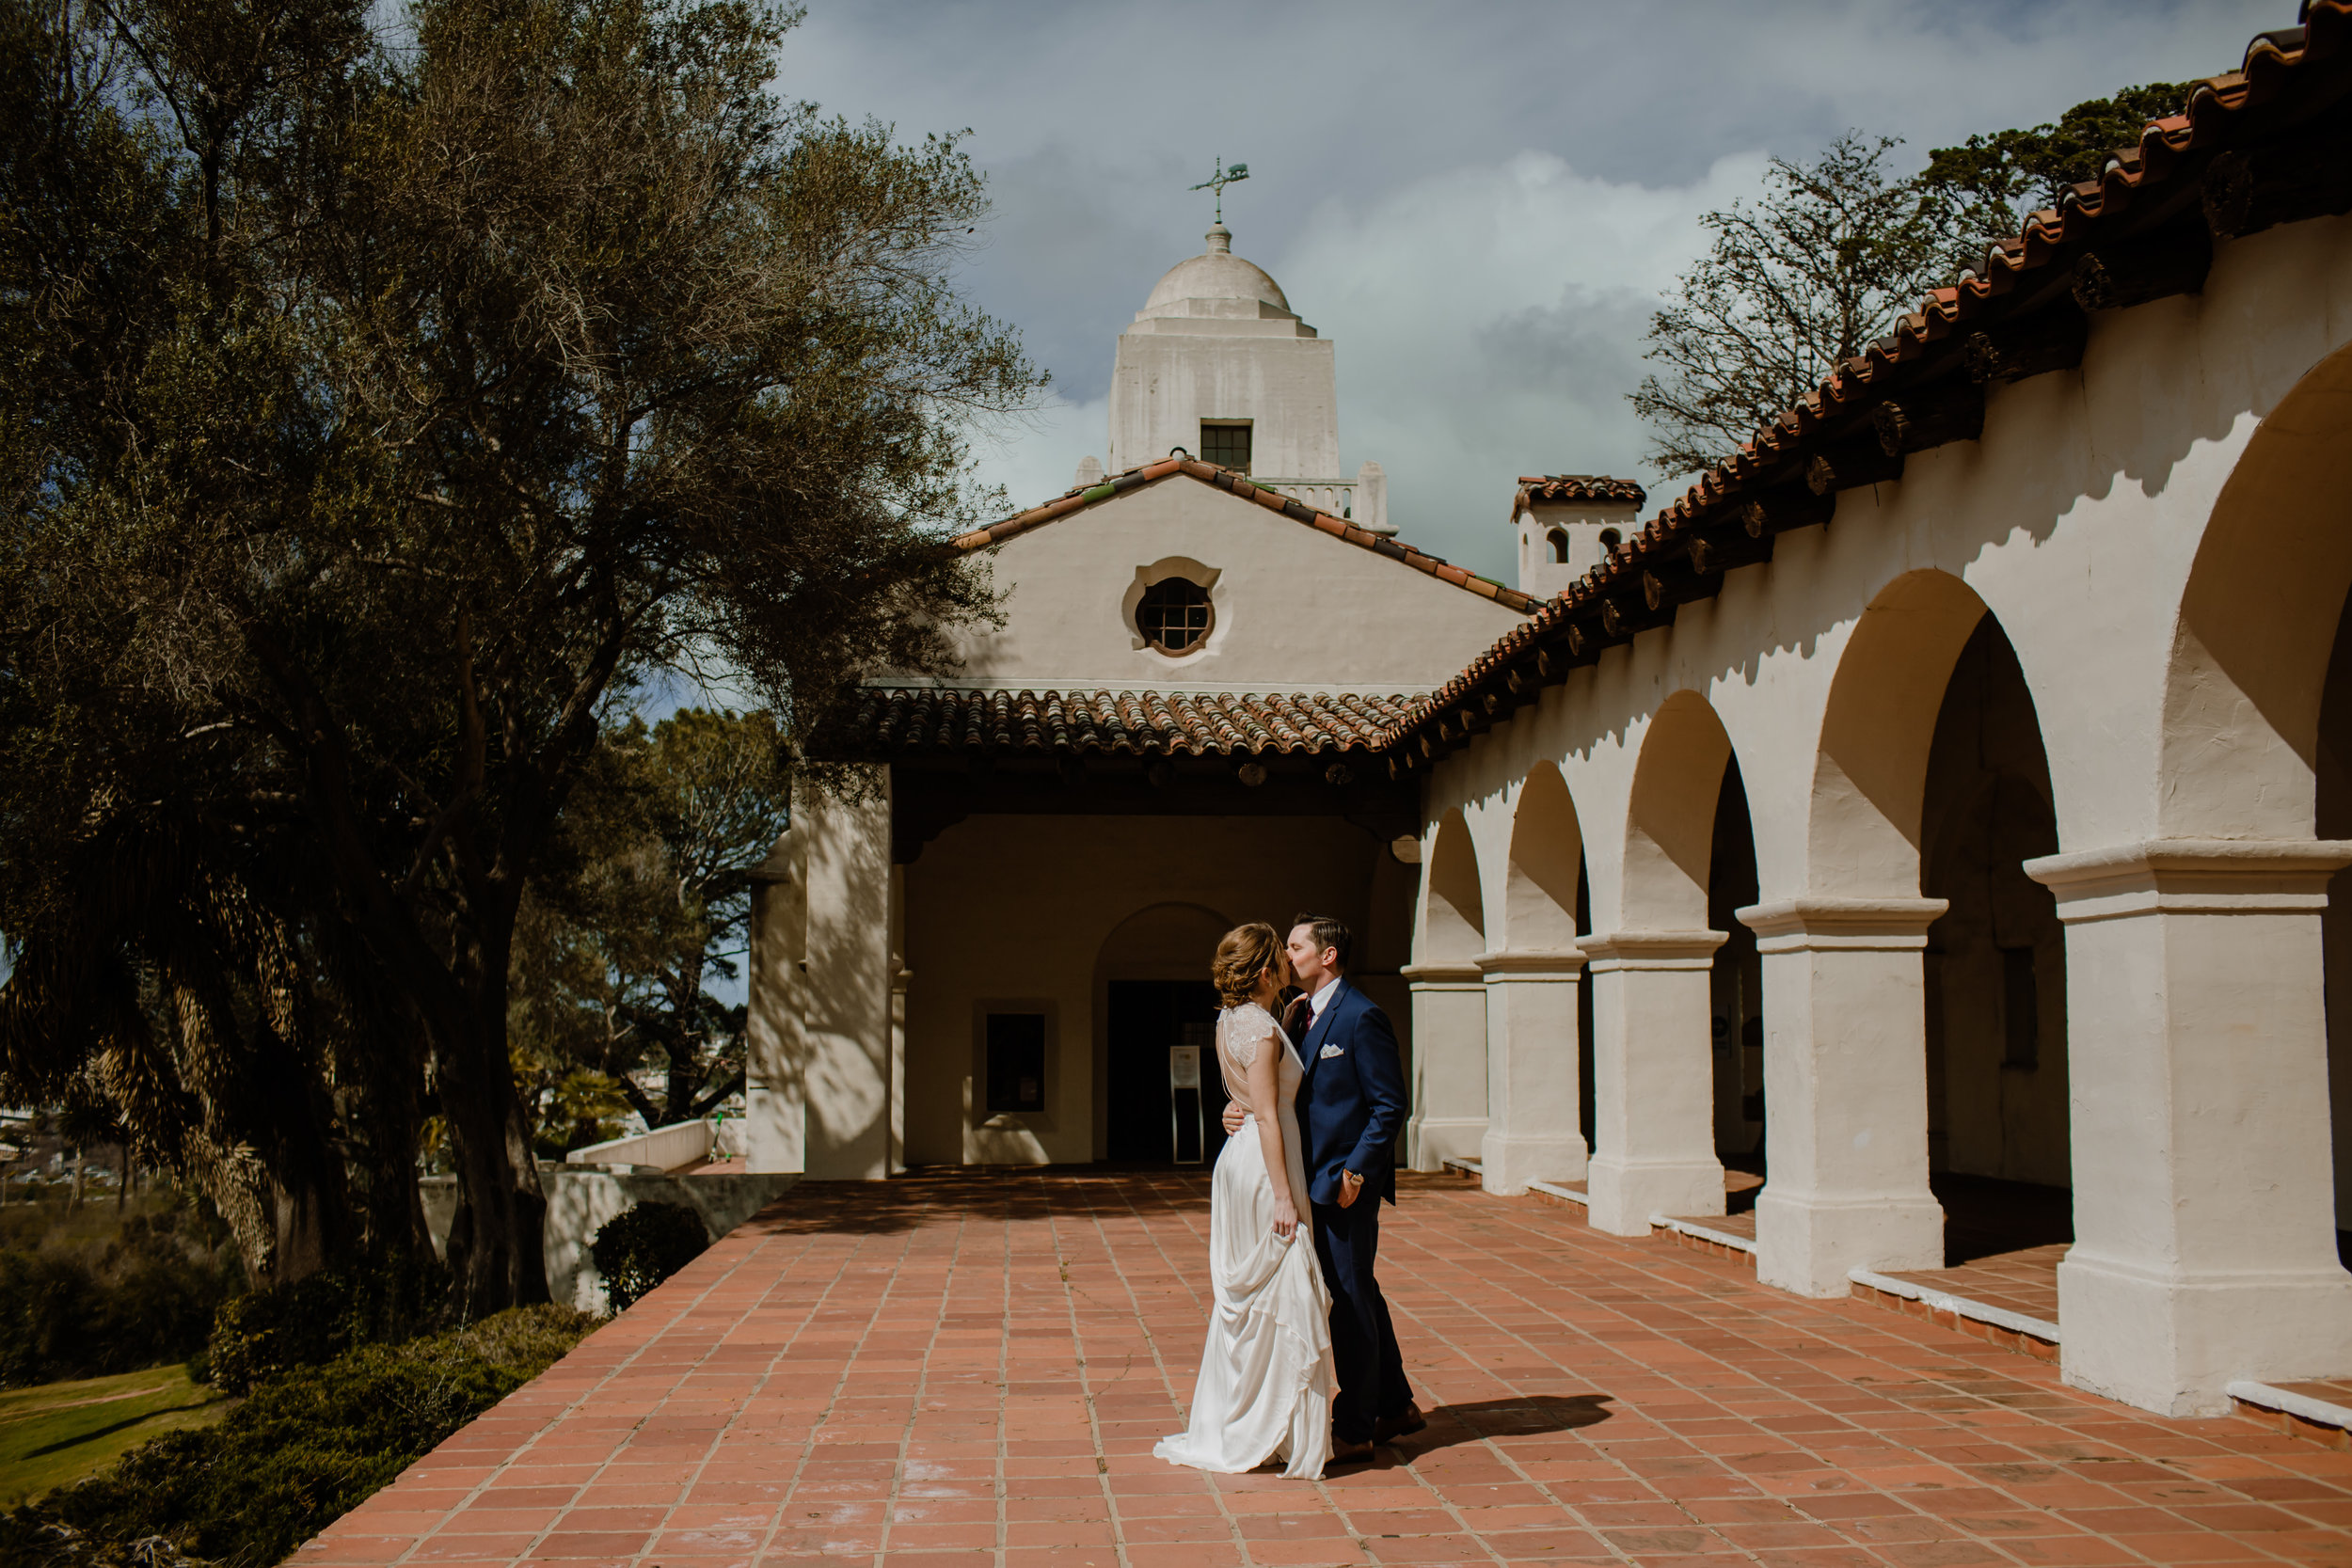 Erin + Jeremiah San Diego Wedding - Lot 8 - Junipero Serra Museum - Eve Rox Photography-150.jpg